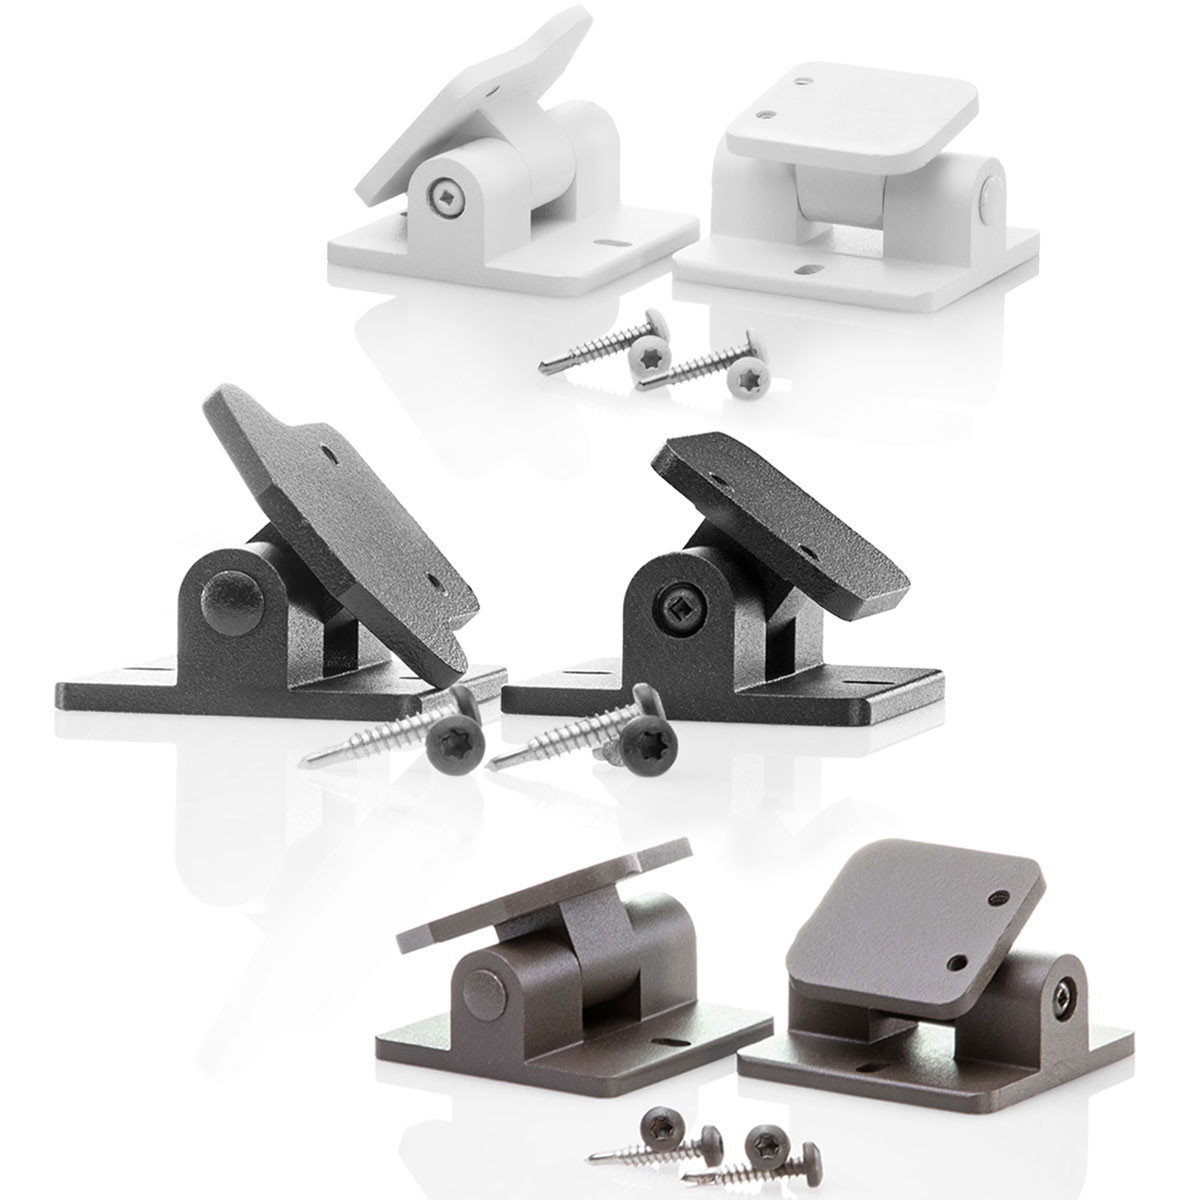 The AFCO Pro Level Rail Adjustable Angle Bracket Kit includes a swiveling top rail and bottom rail bracket.